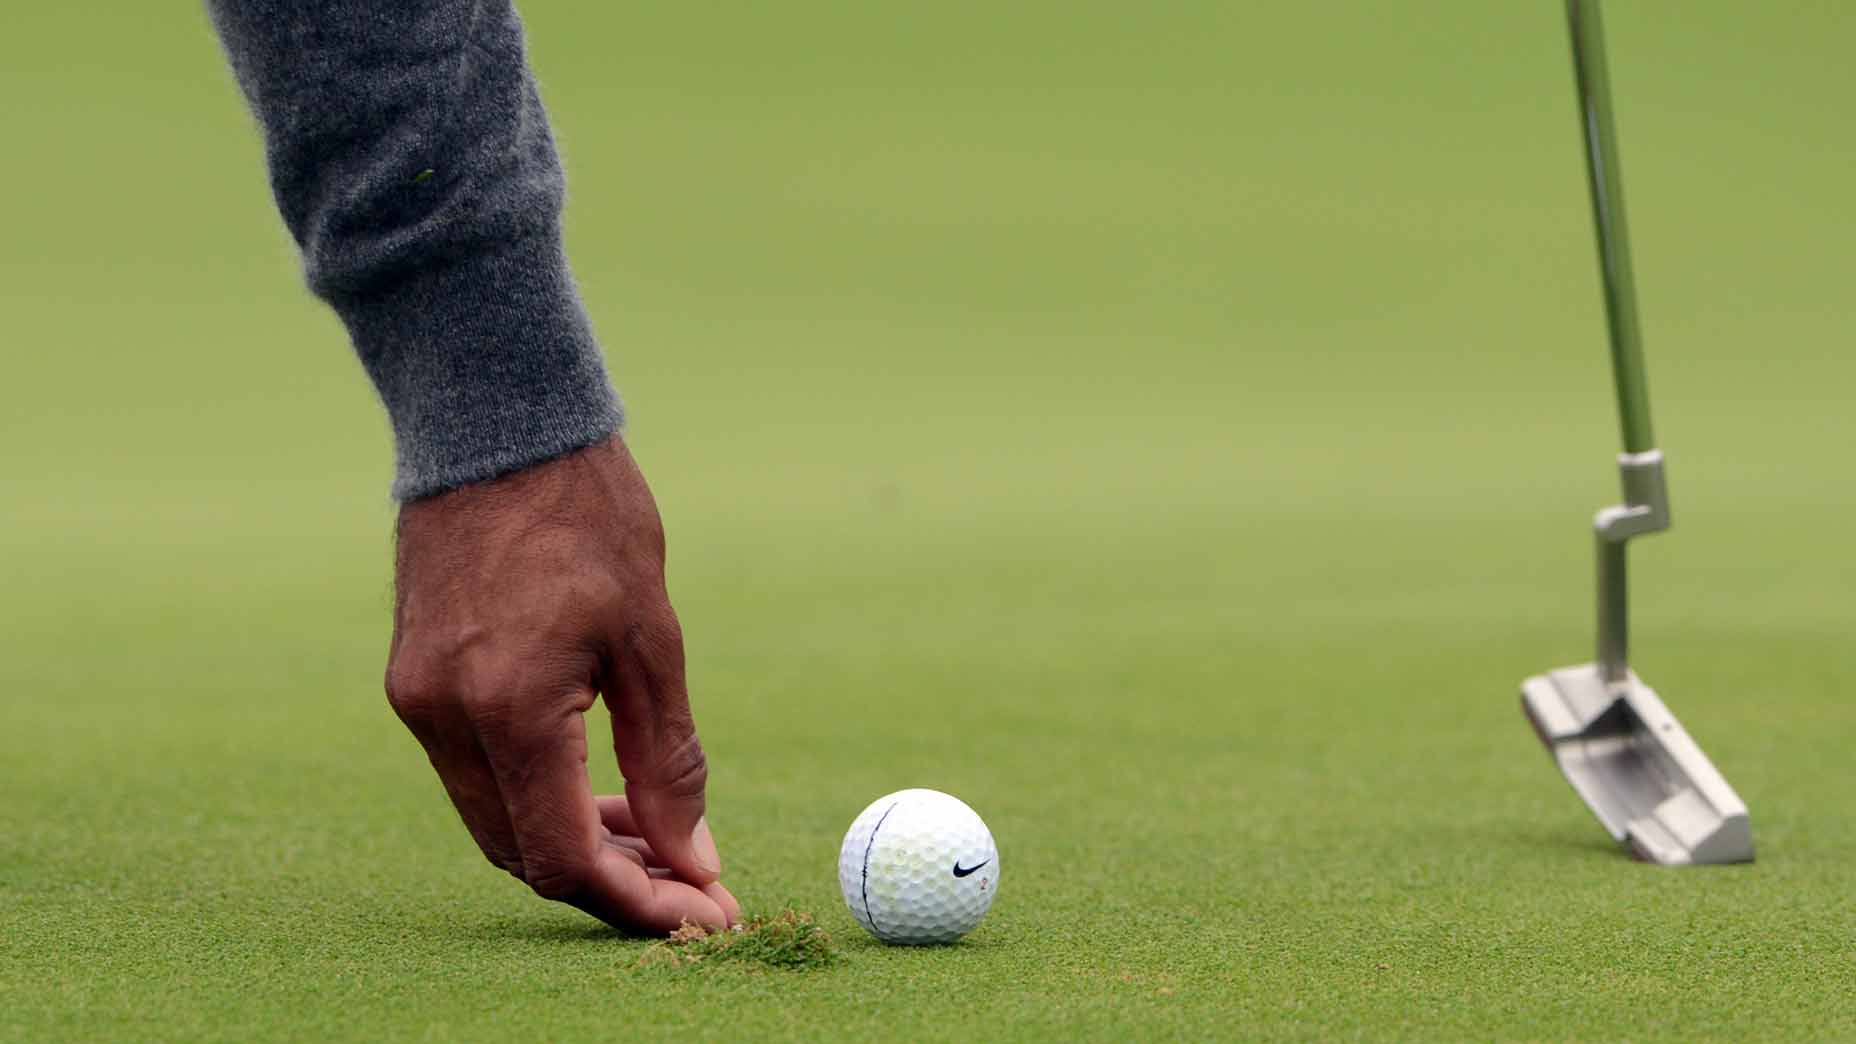 ball mark on green